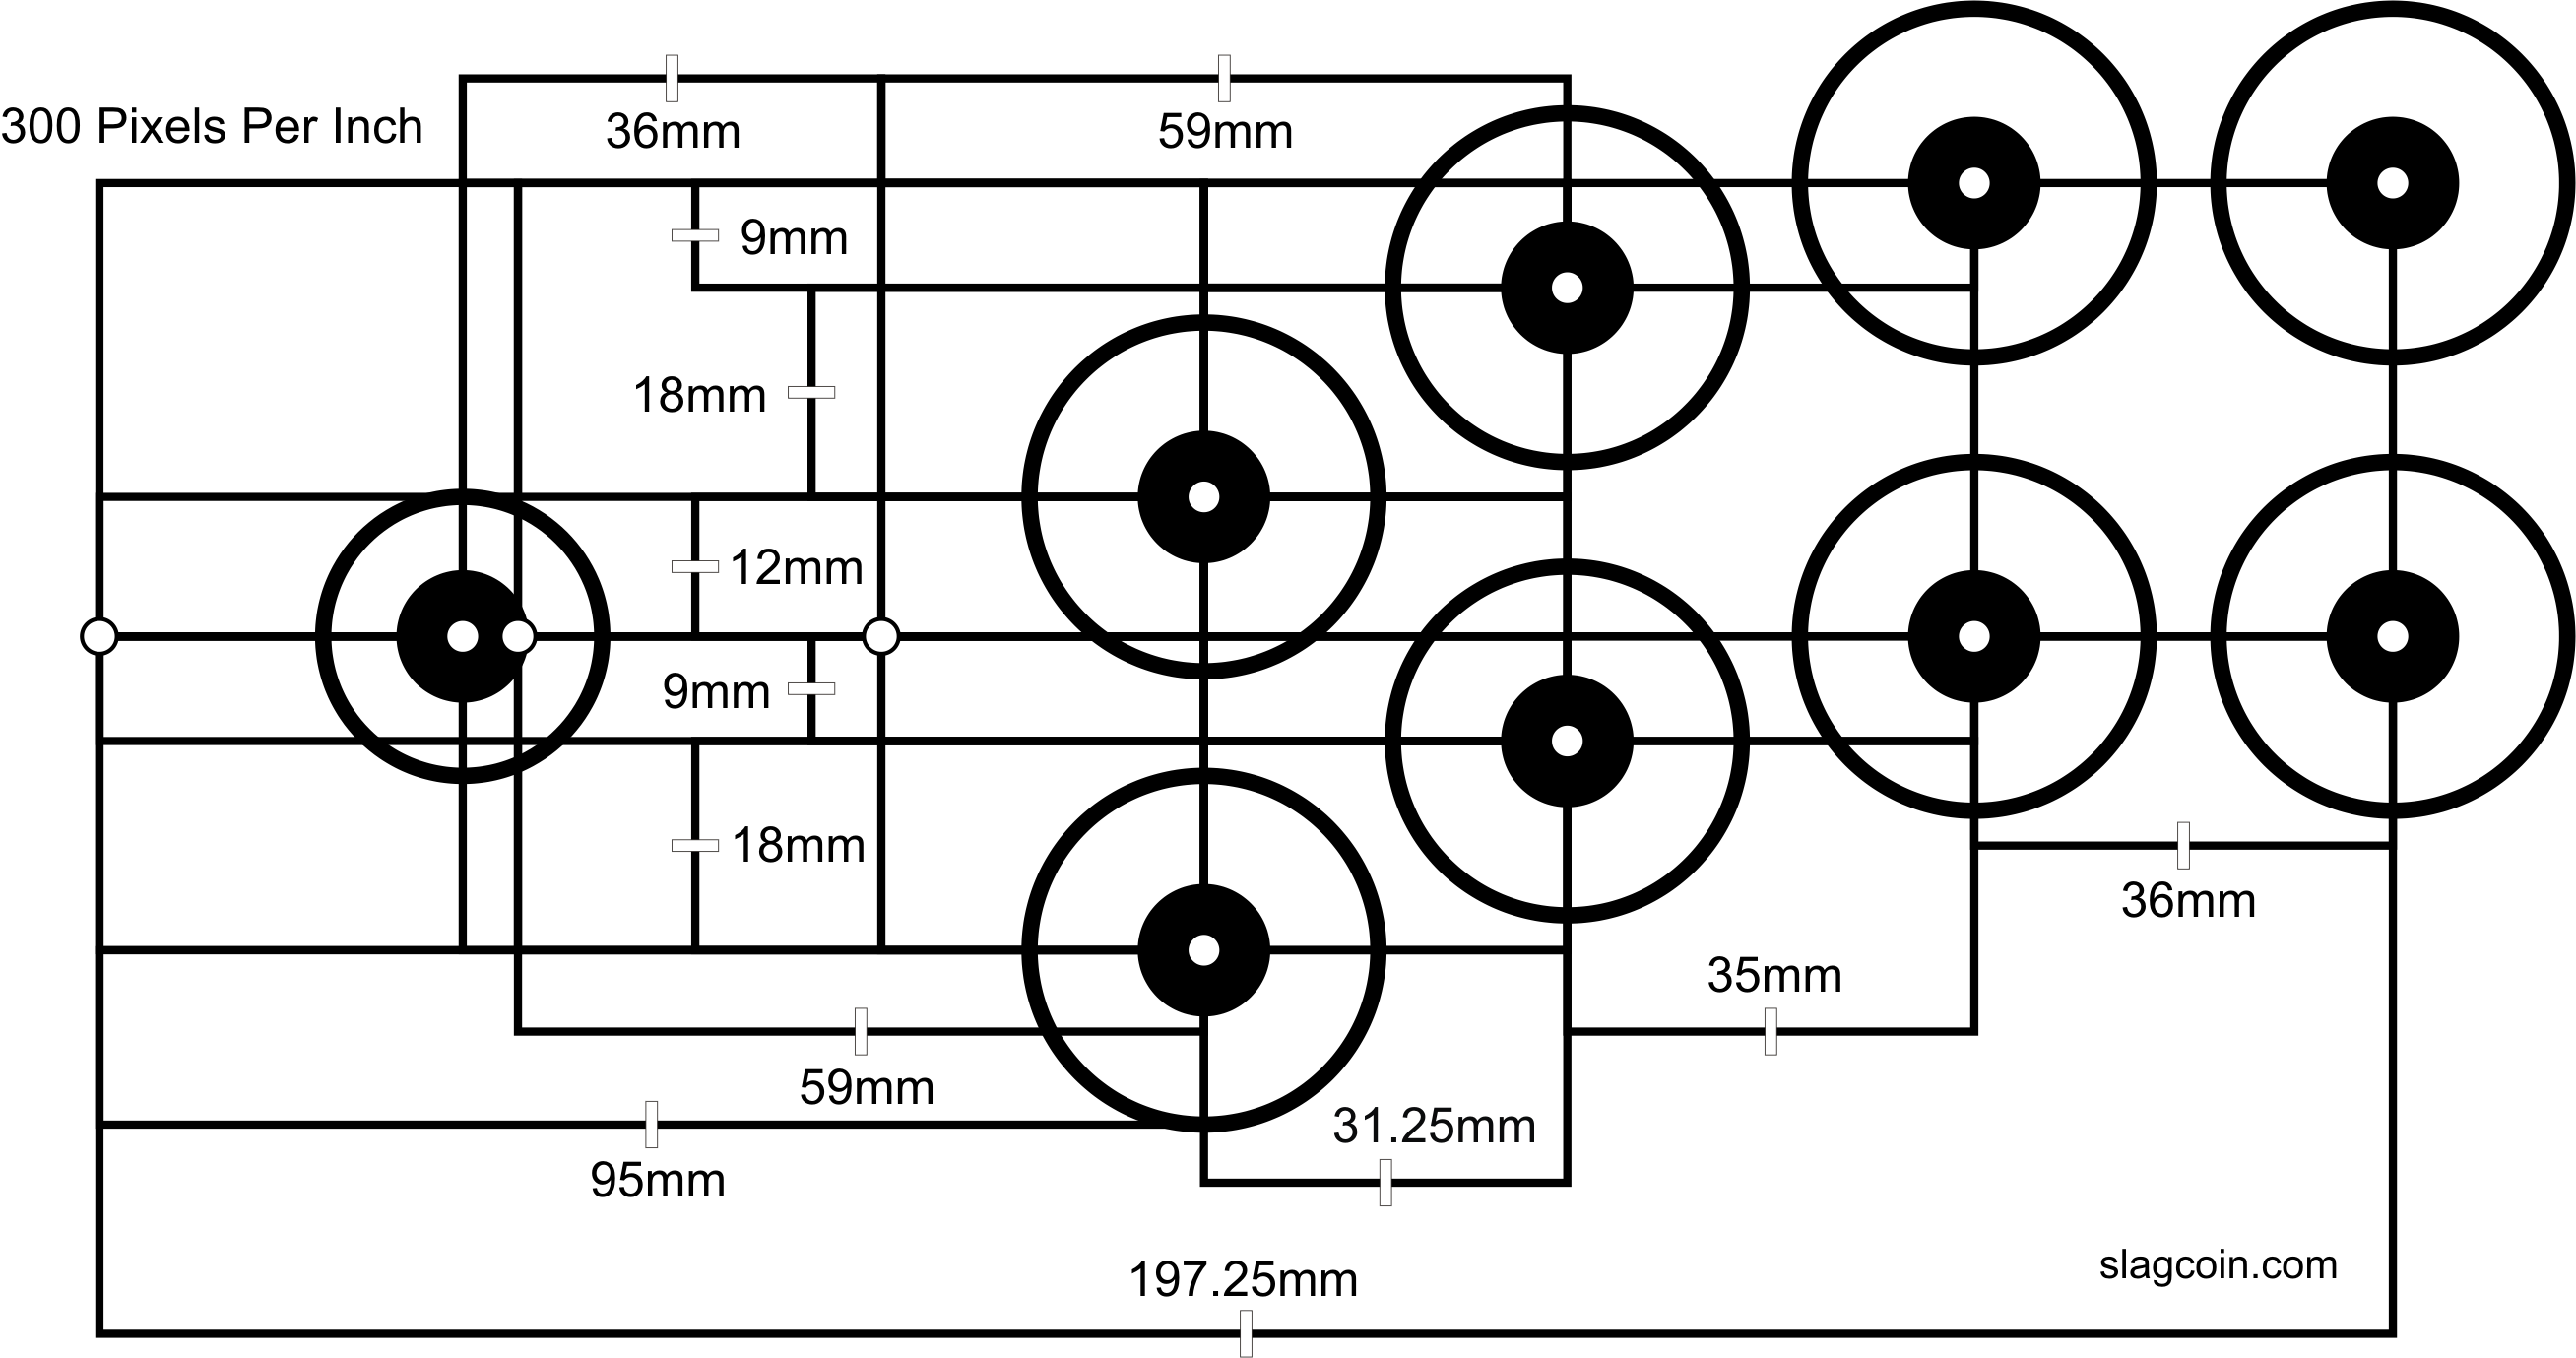 graphic about Printable Arcade Button Template called Joystick Controller - Panel Style